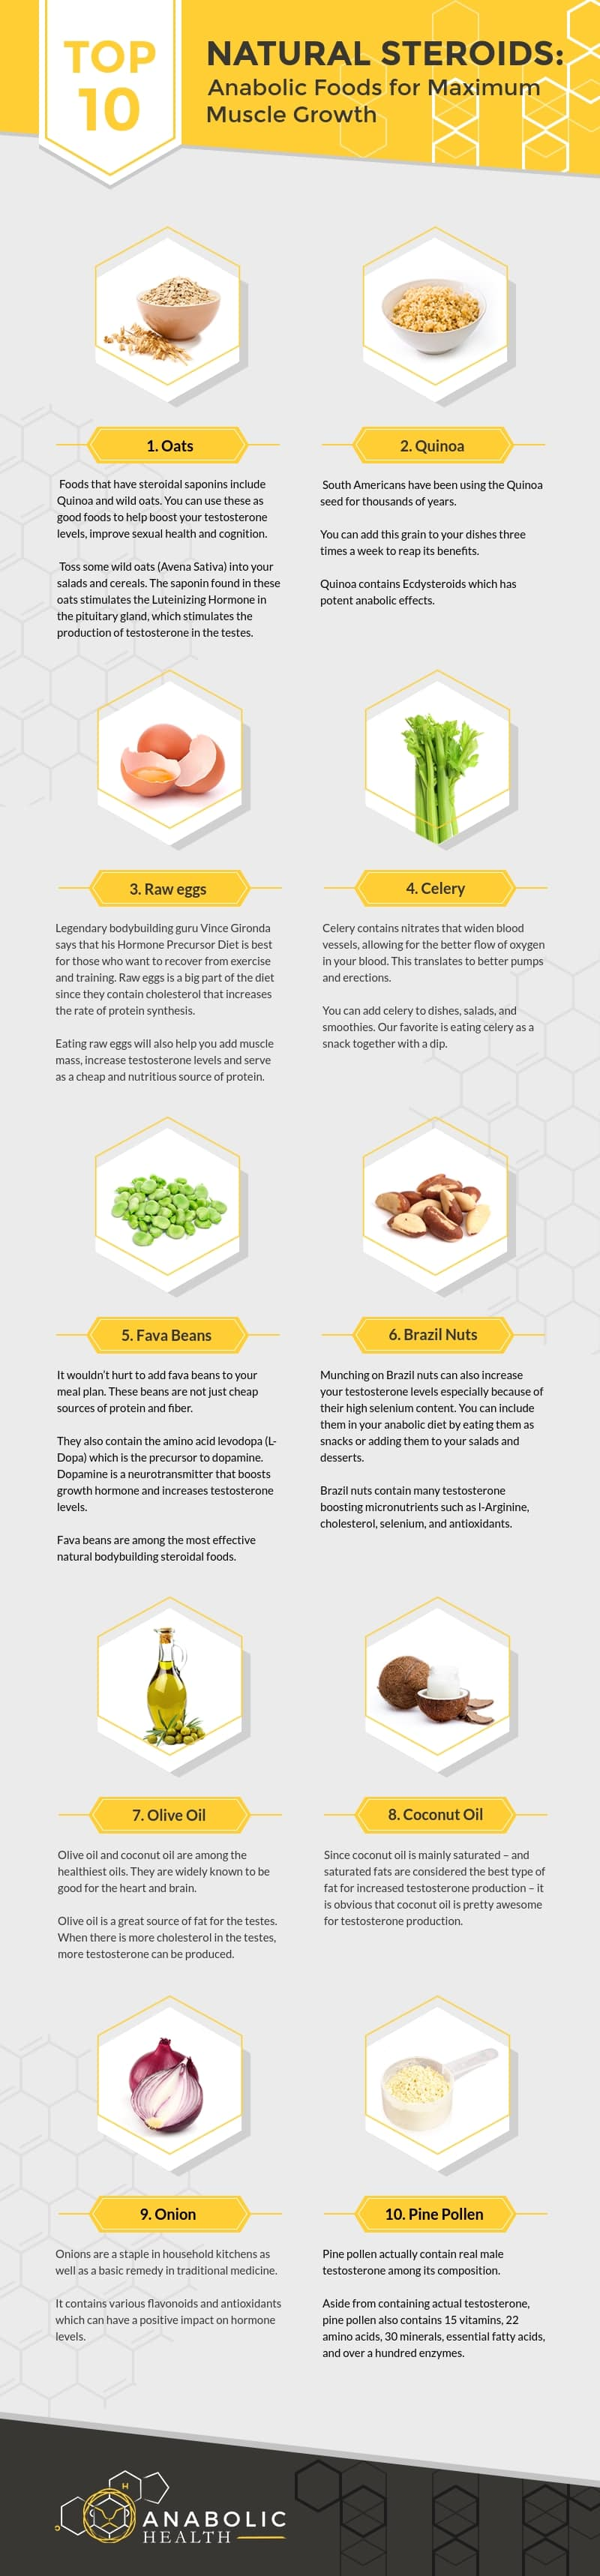 Top-10-foods-infographic-images